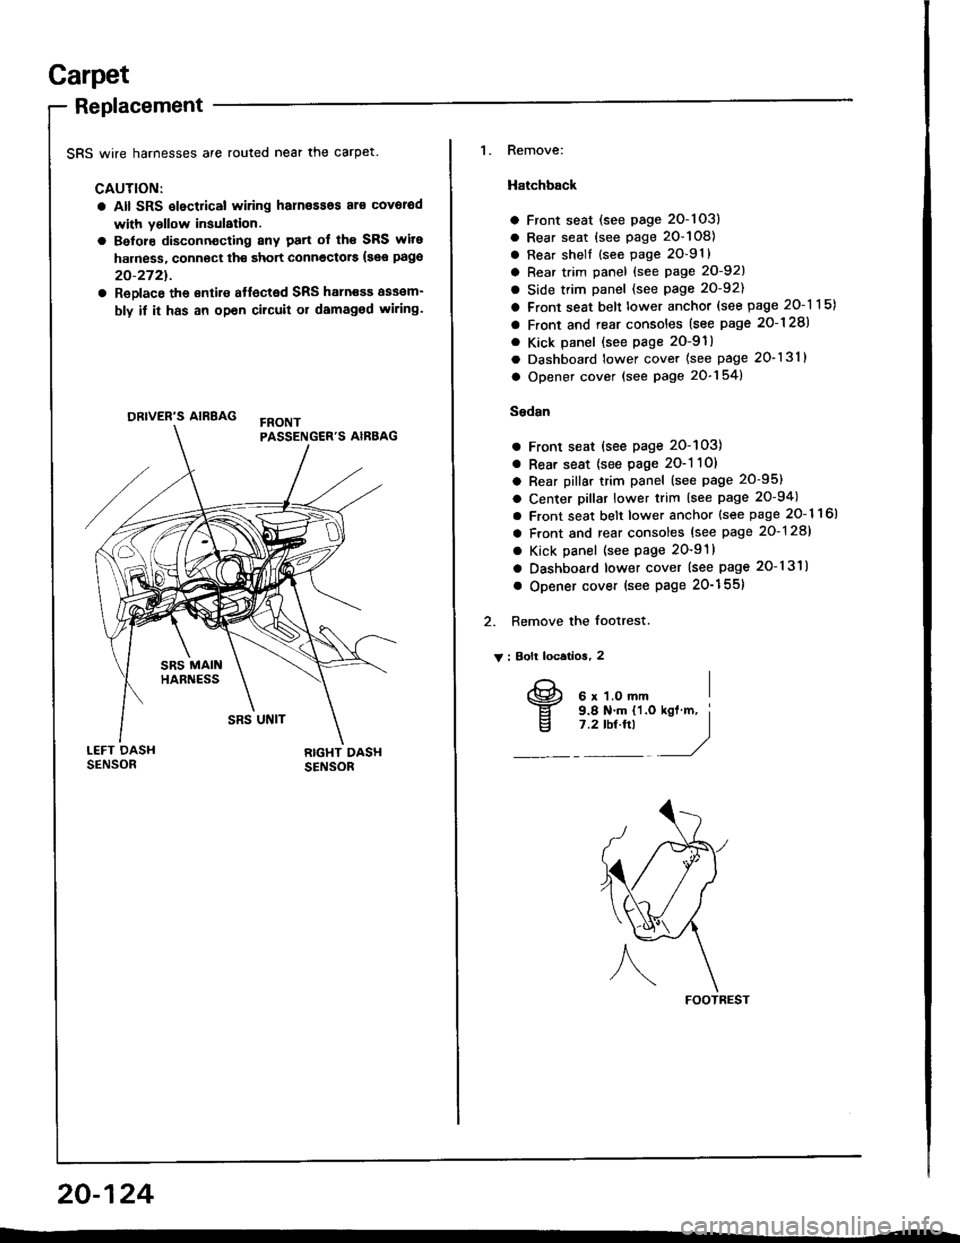 Honda Integra 1994 4g Workshop Manual 94 Wiring Harness Page 993 Garpet Replacement Srs Wire Harnesses